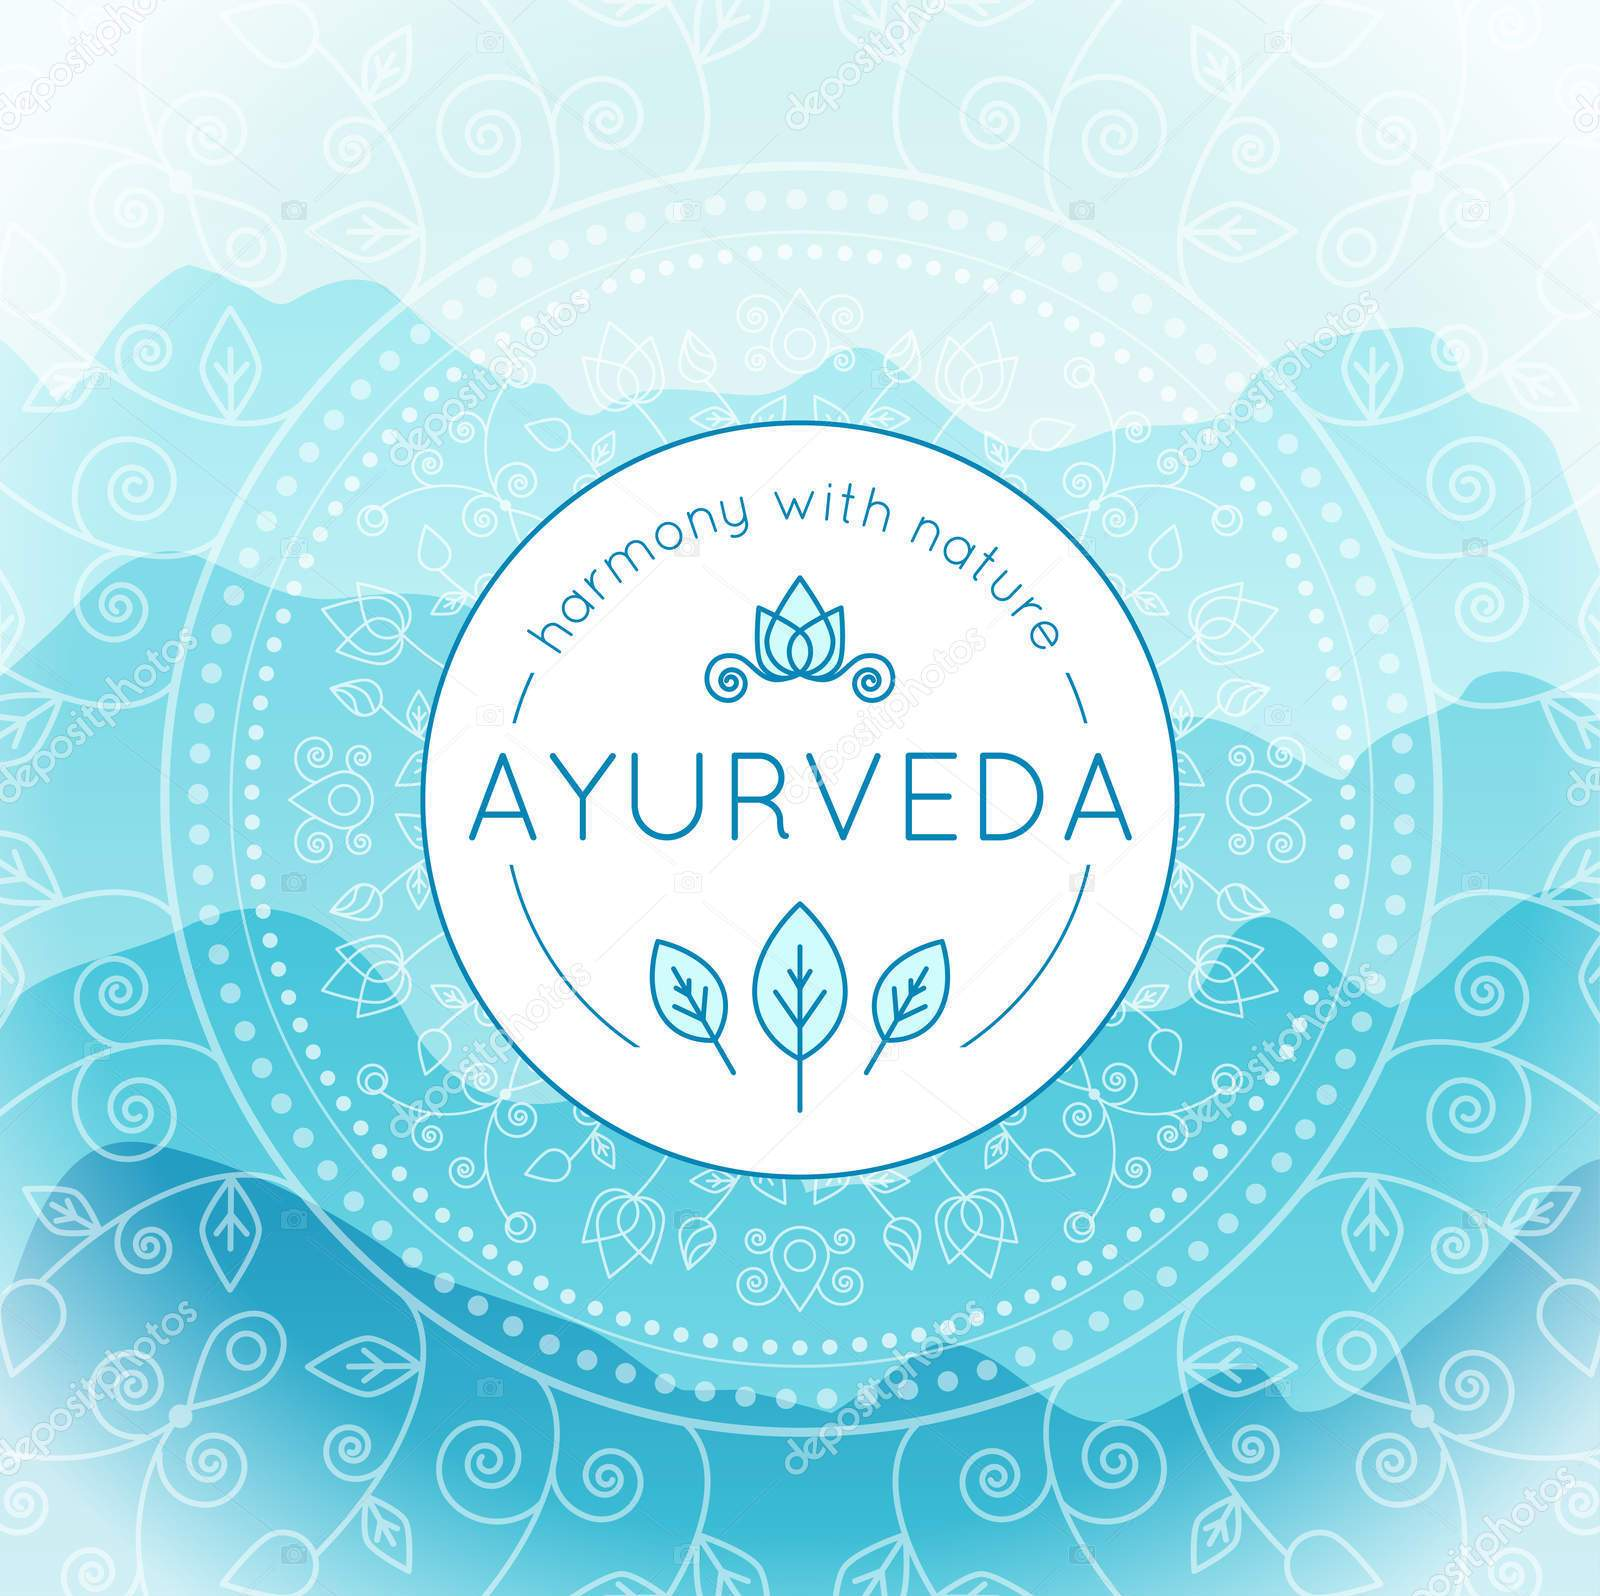 Vector Ayurveda illustration with mountains landscape, ethnic patterns and sample text in light blue colors for use as a template of banner, backdrop or poster for ayurveda medicine center or product.